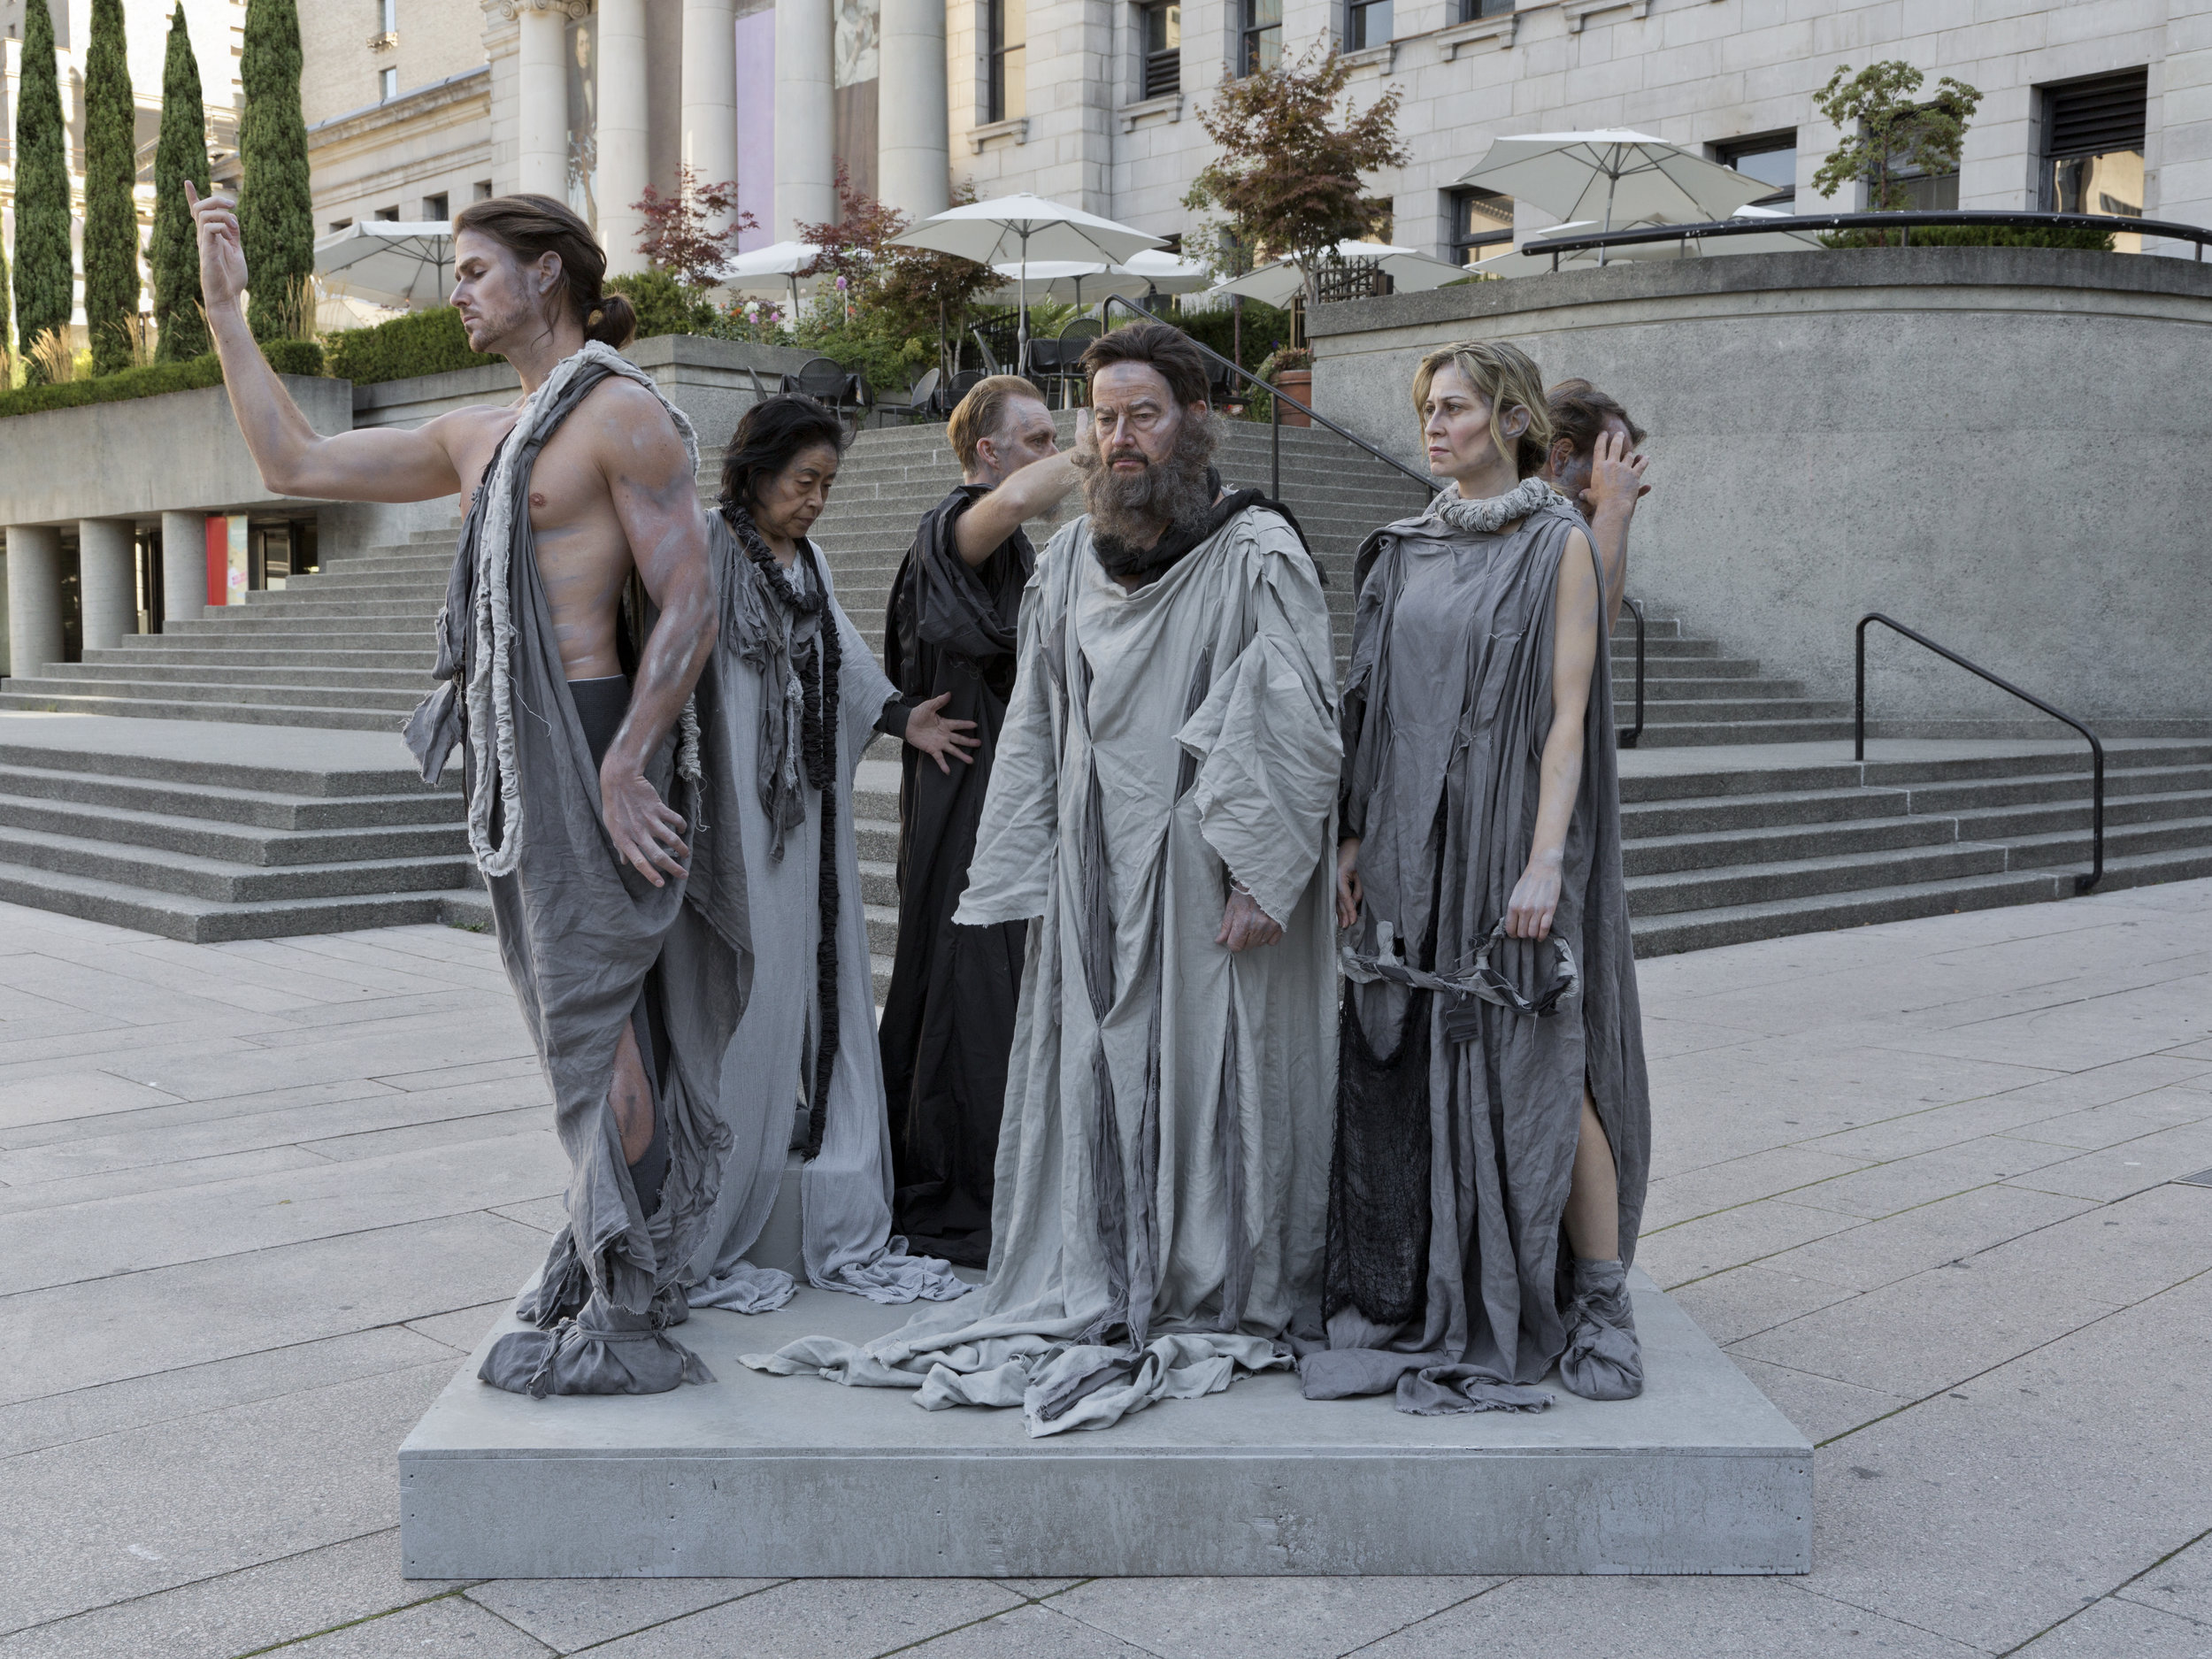 The Burghers of Vancouver 2015, archival pigment print 76  x 102 cm / 30 x 40 in. Edition of 5